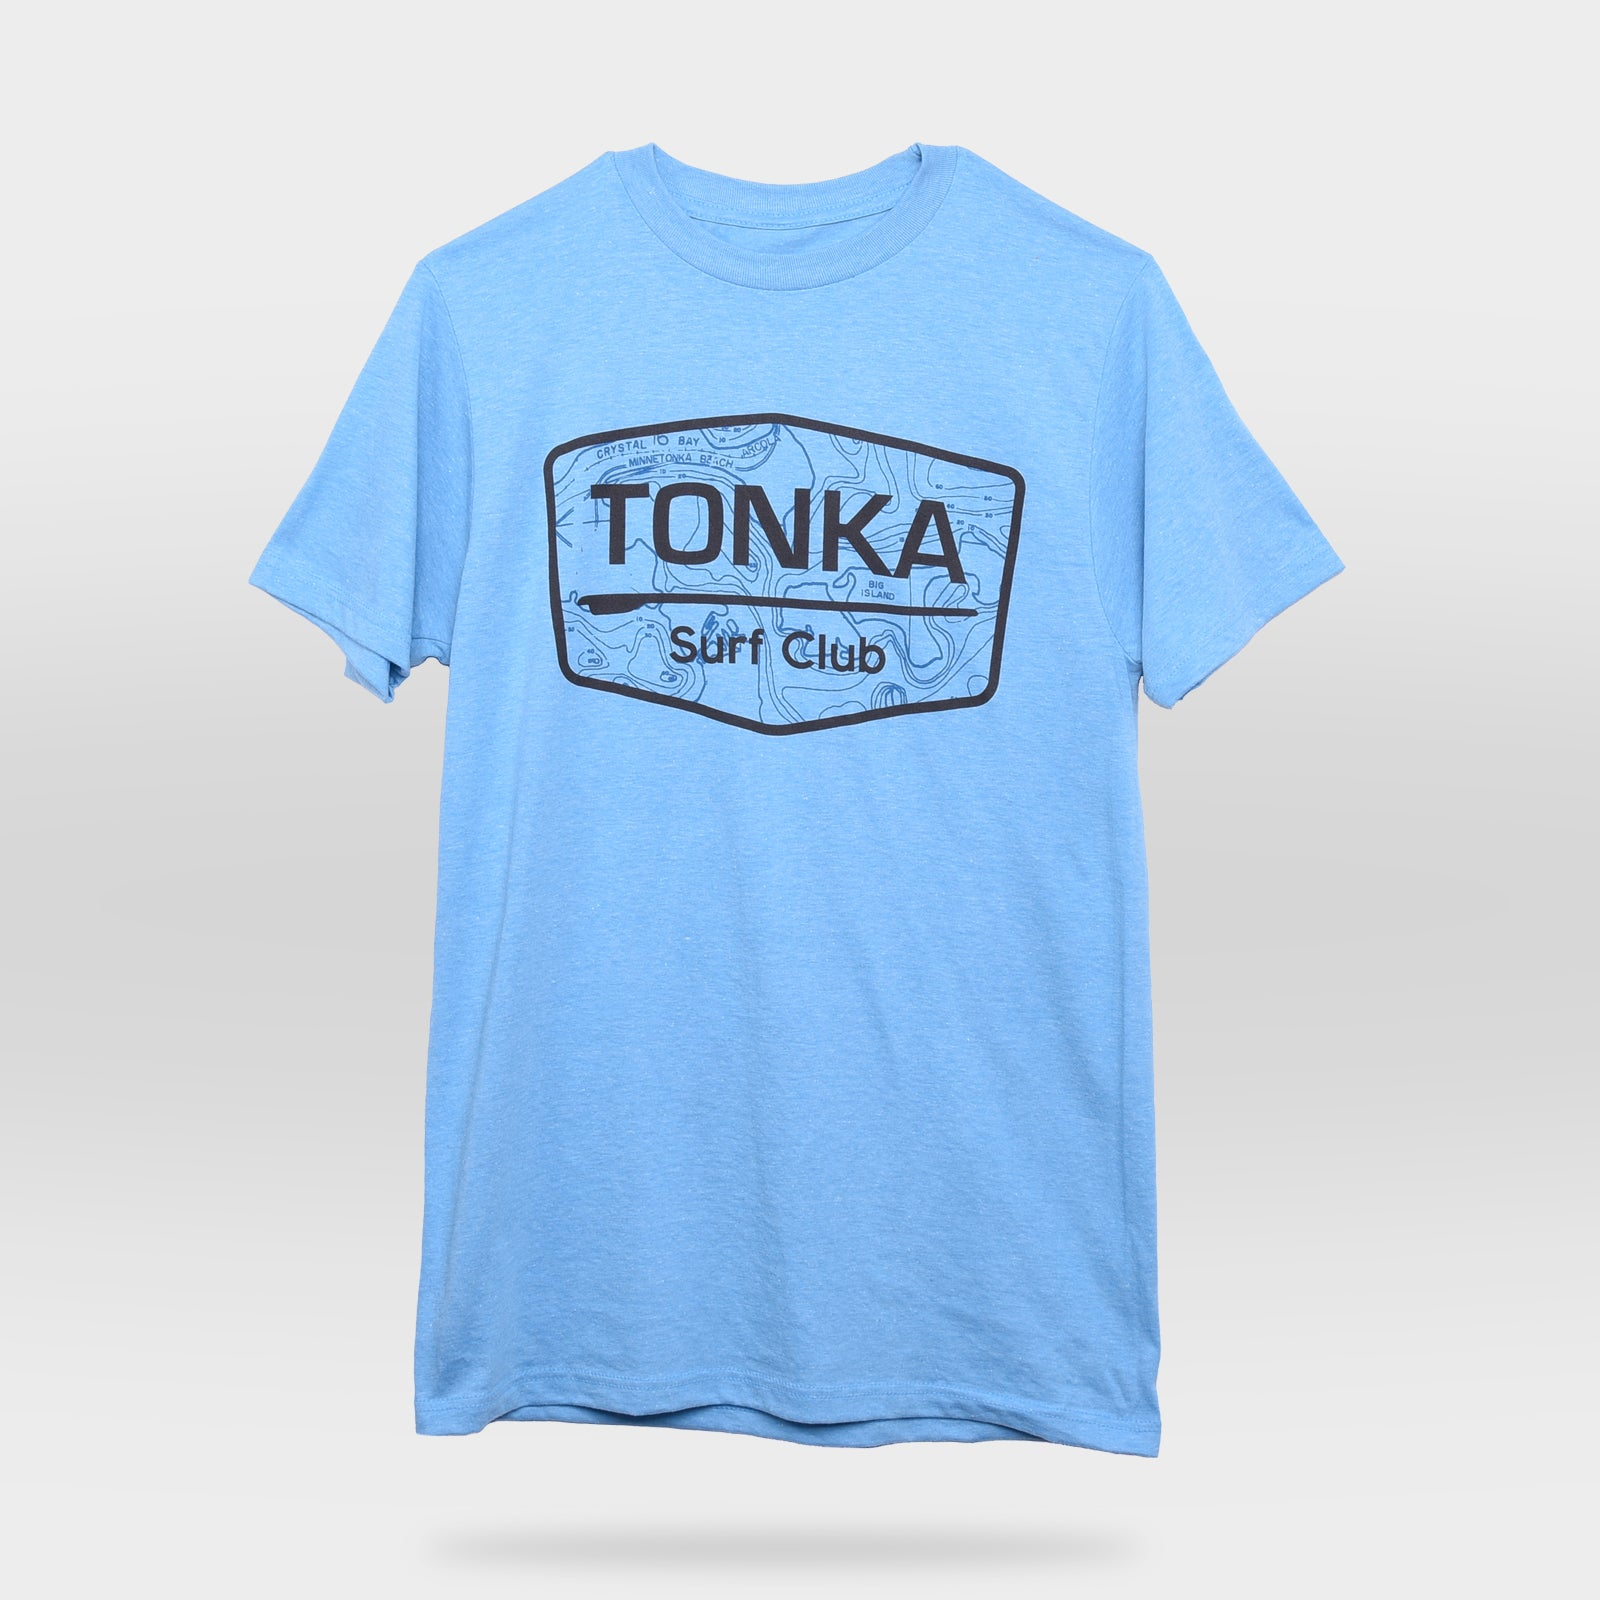 Front view of Light Blue TONKA Surf Club T-Shirt